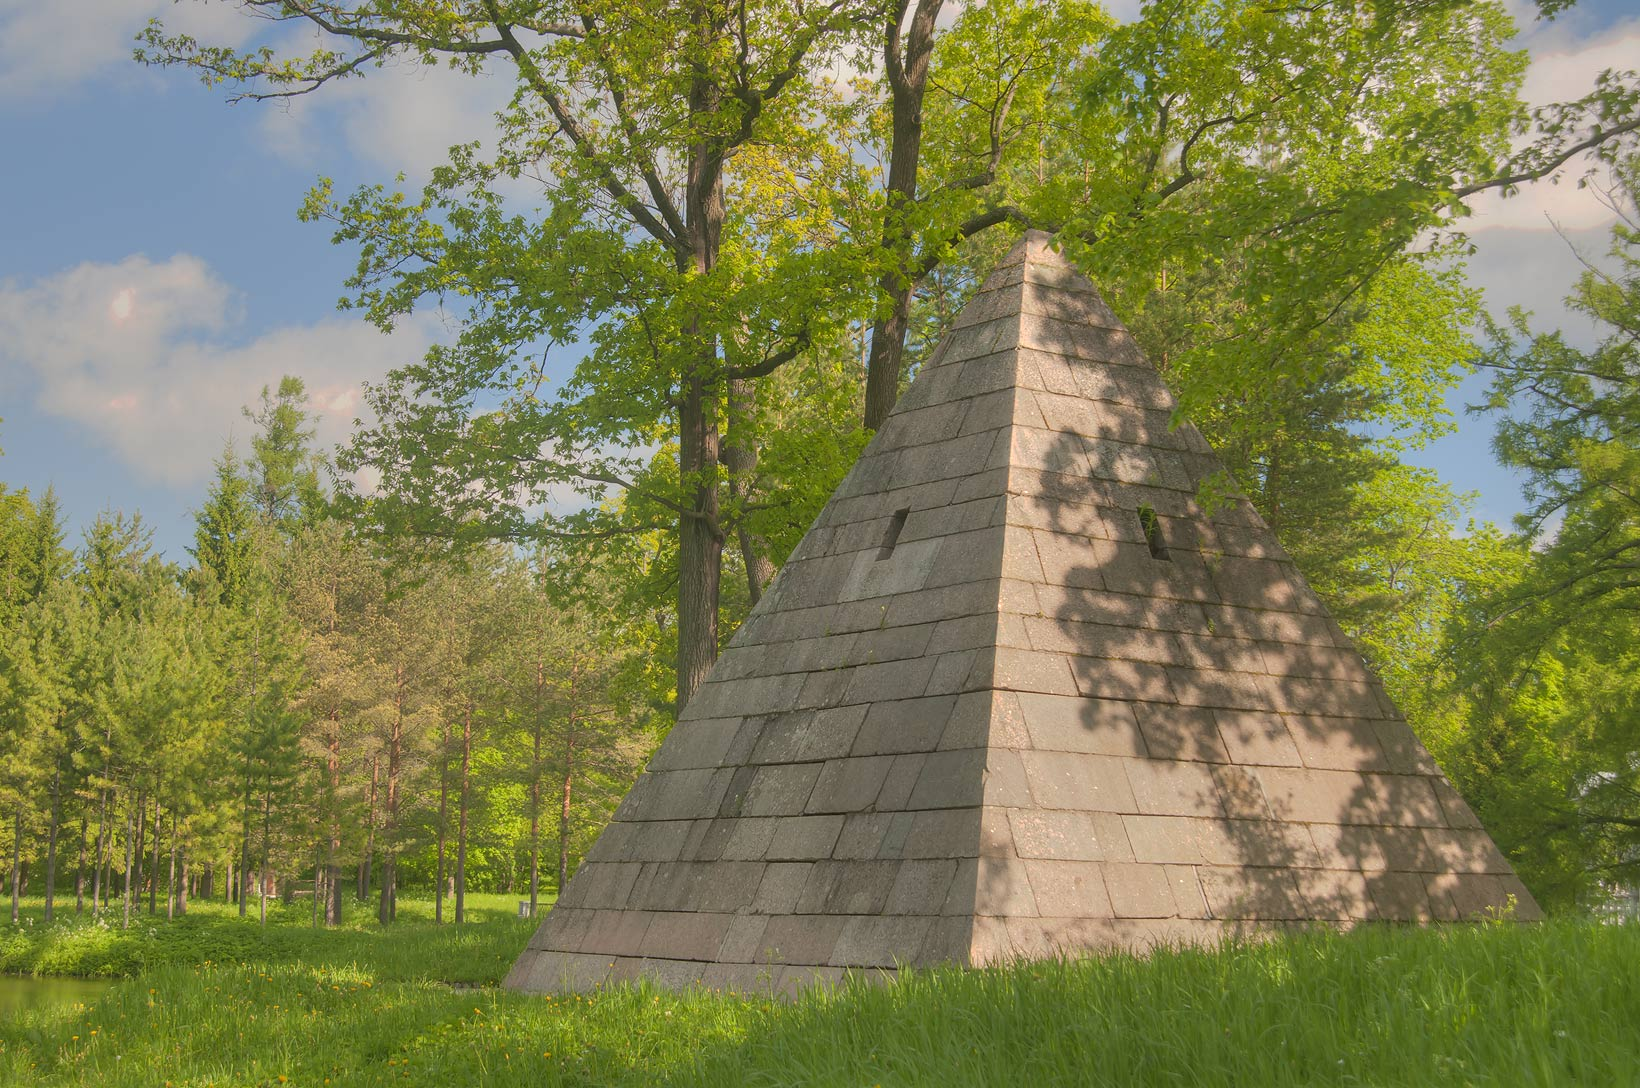 Pyramid in Ekaterininsky Park. Pushkin (former...south from St.Petersburg, Russia